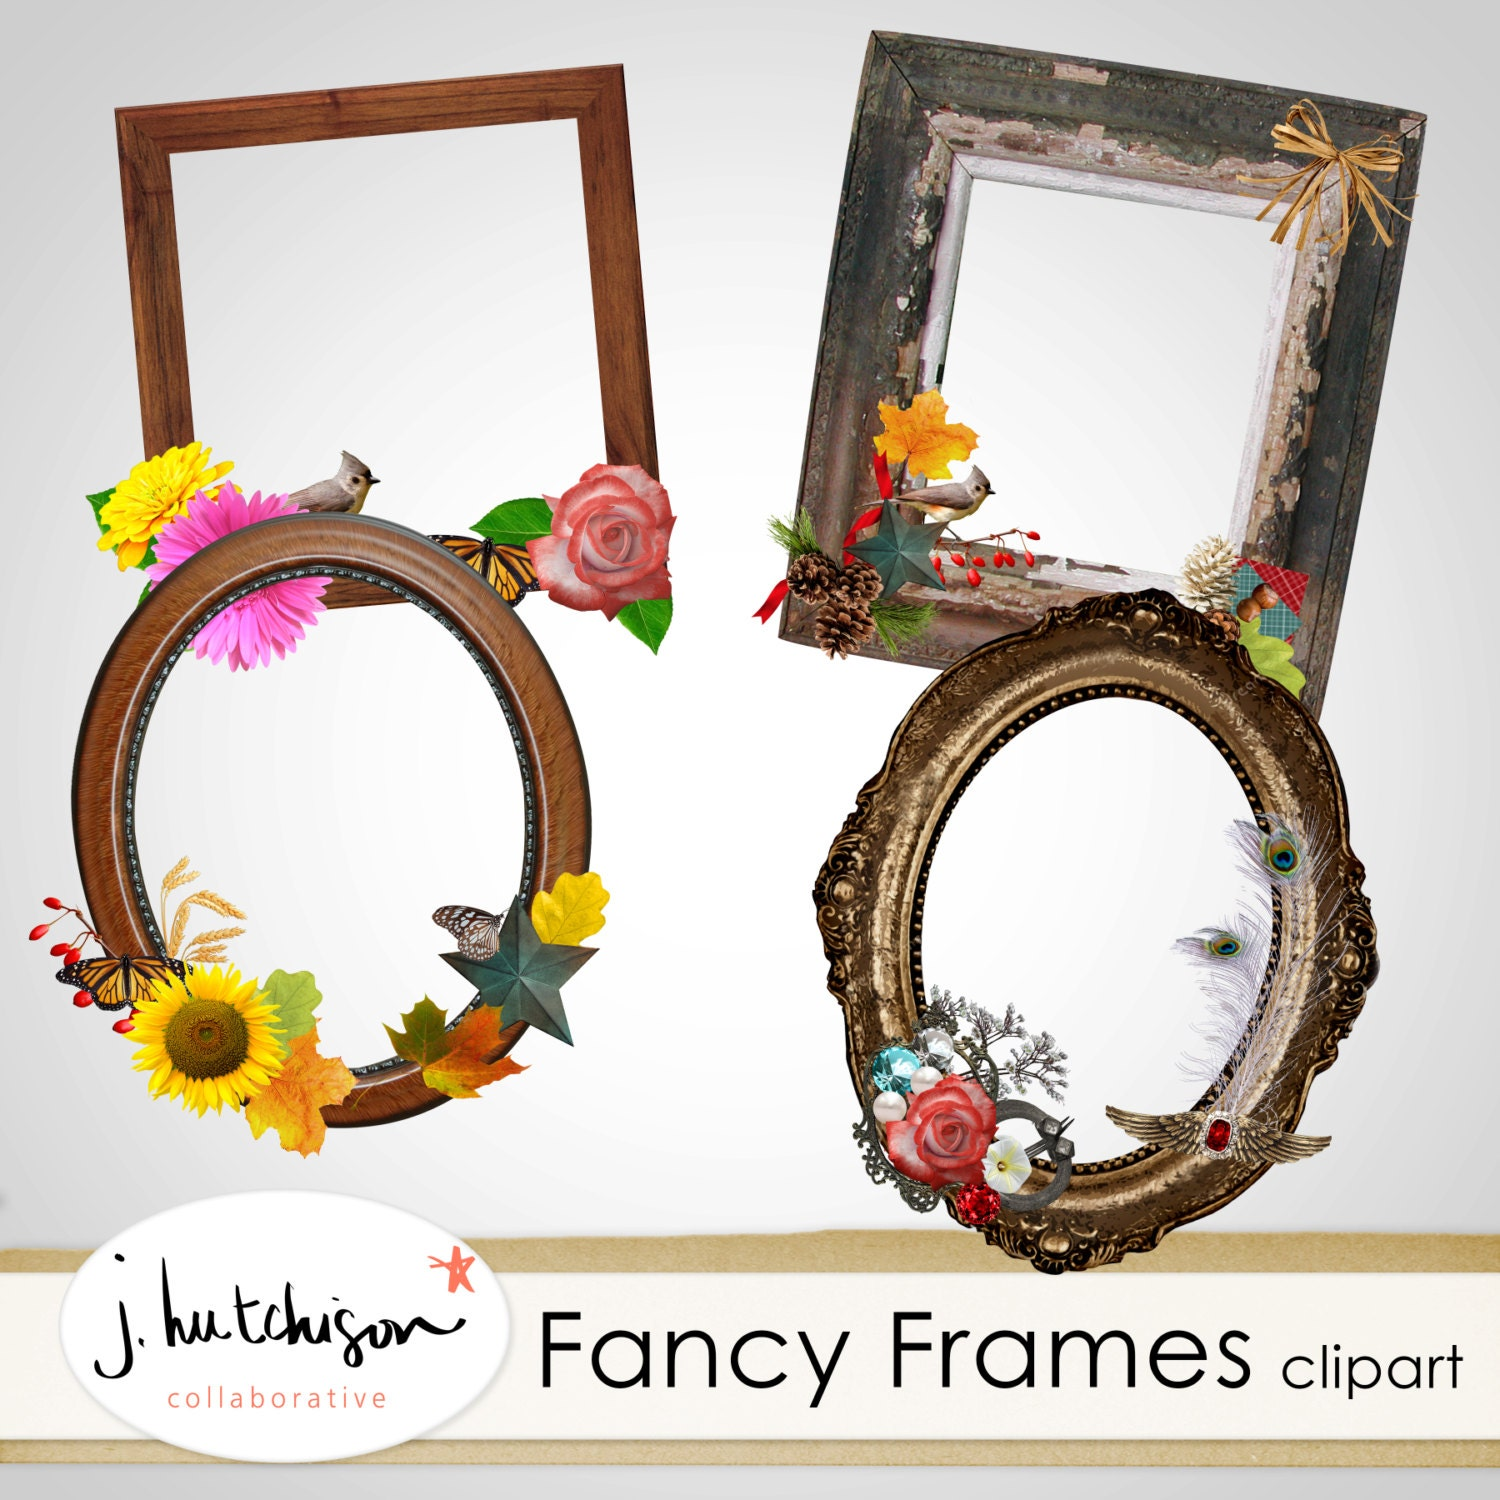 Fancy Frame Clipart 4 PNG clip art frames for photos and | Etsy